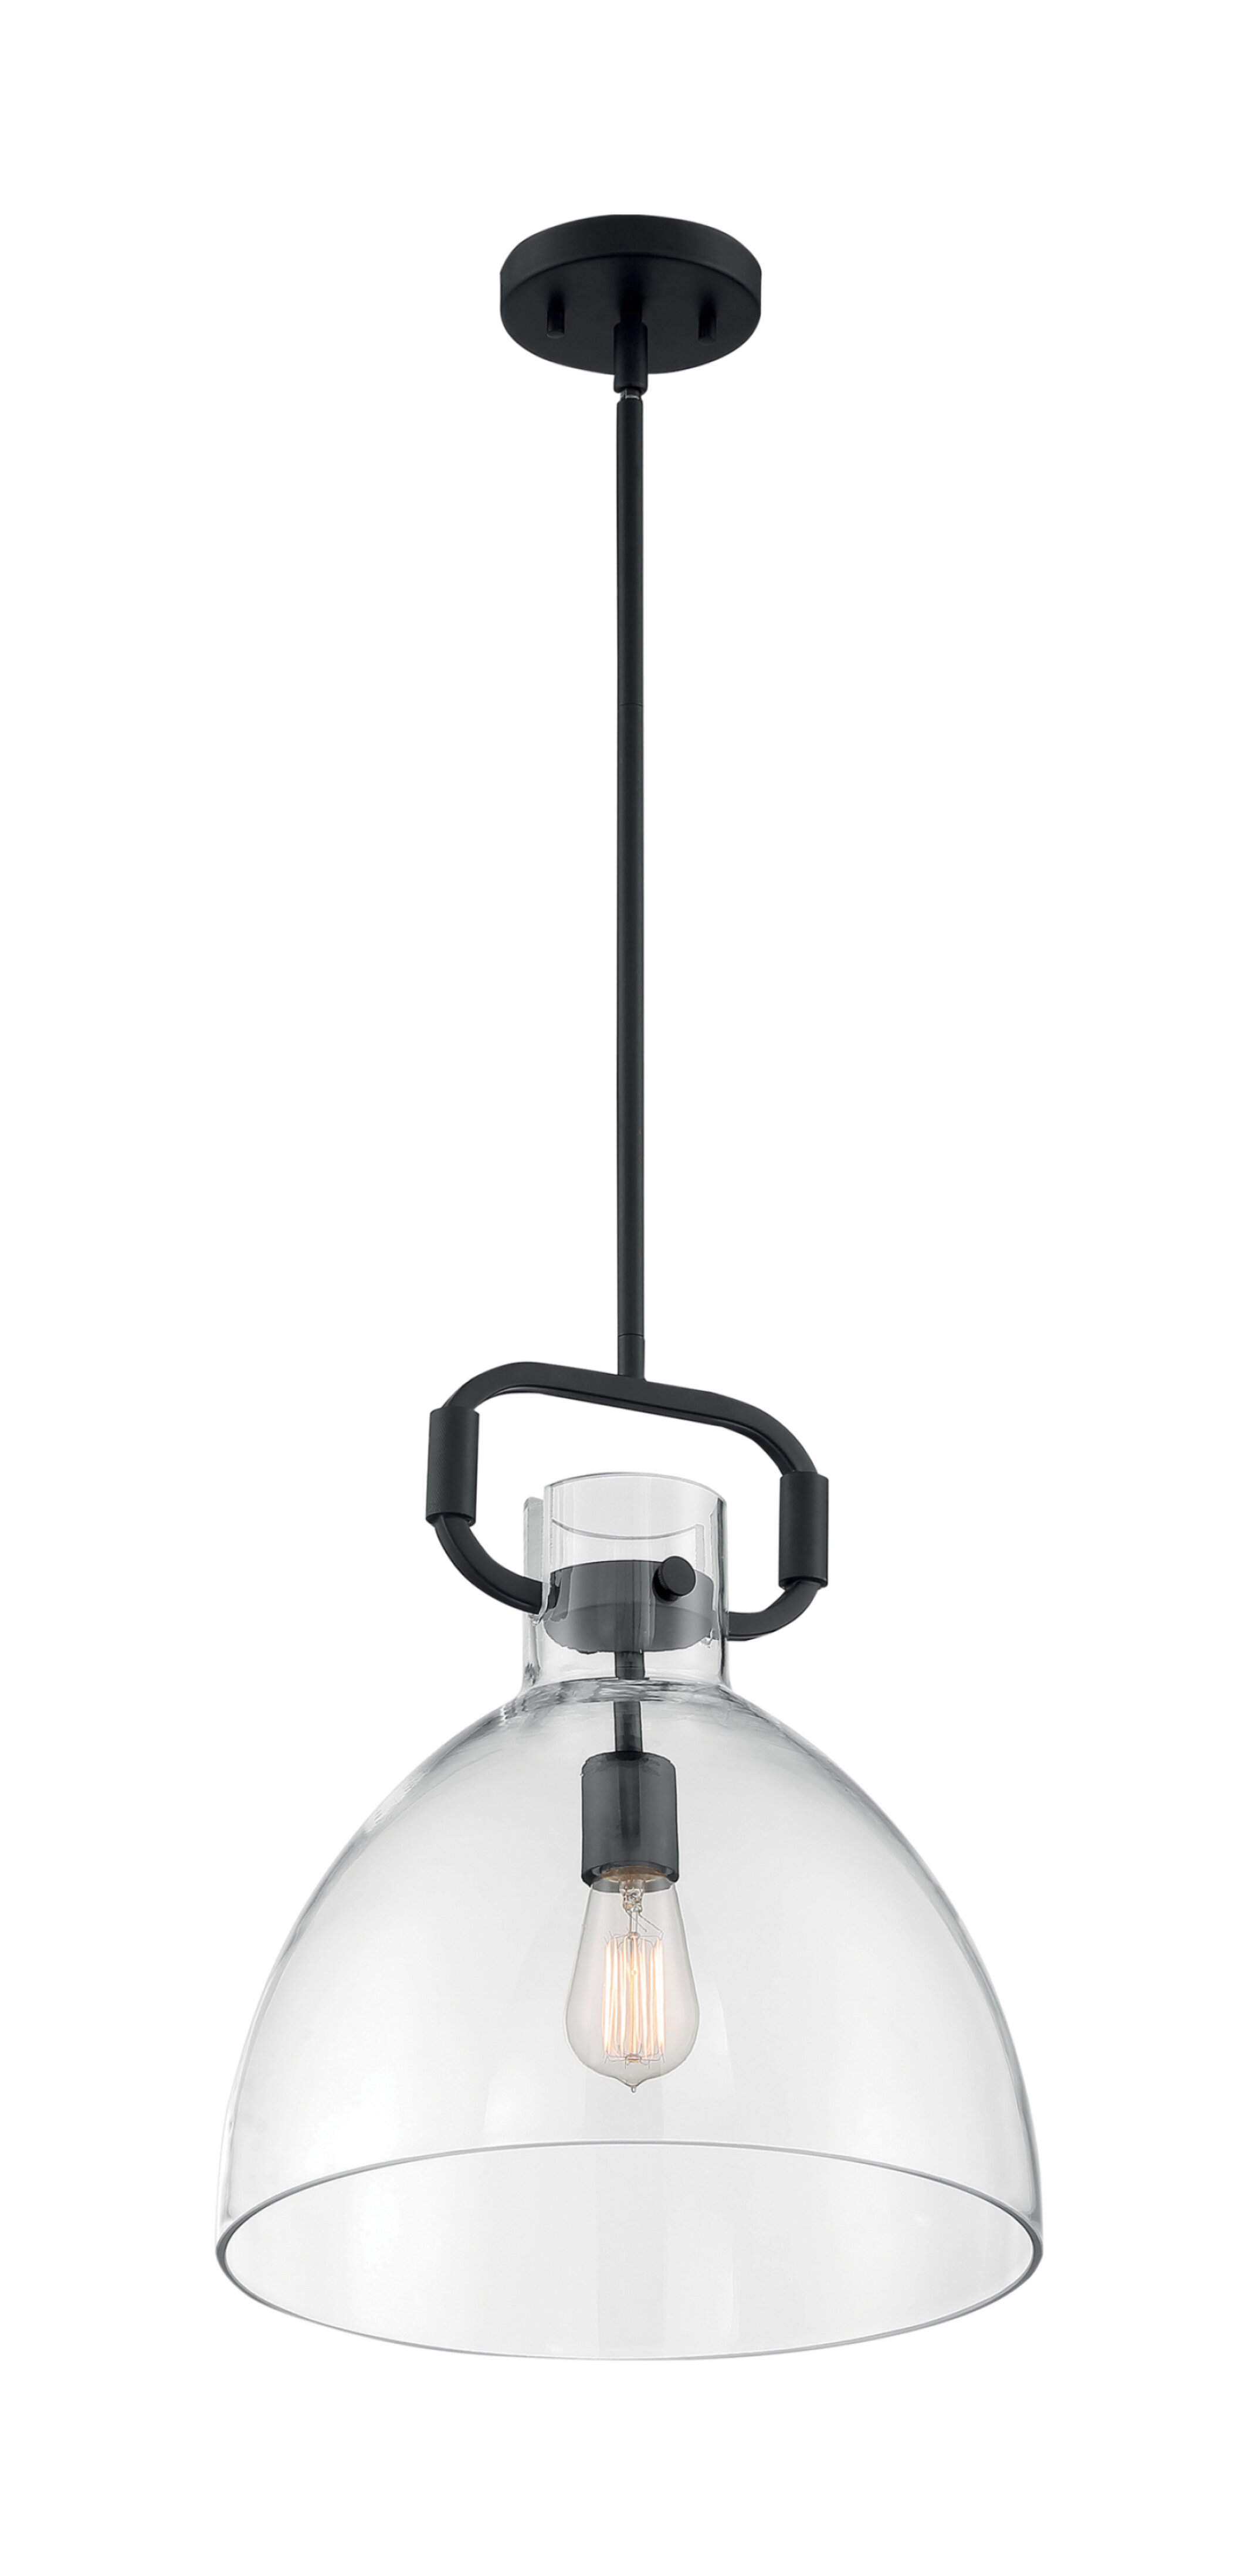 Sannah 1 Light Unique Bell Pendant Reviews Joss Main